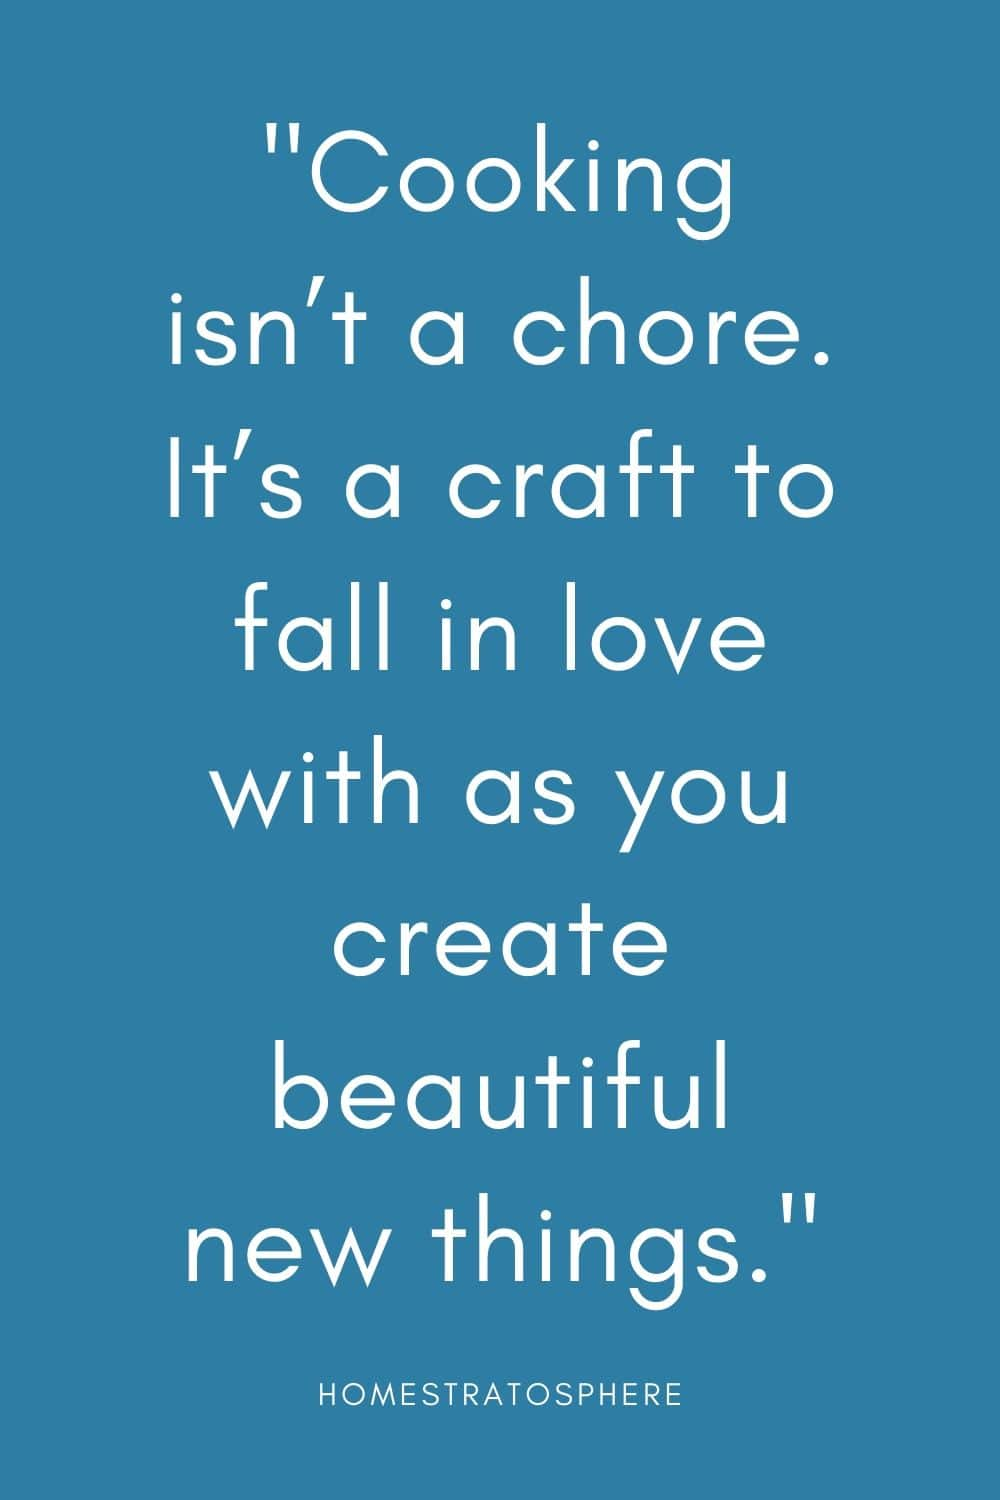 """Cooking isn't a chore. It's a craft to fall in love with as you create beautiful new things."""